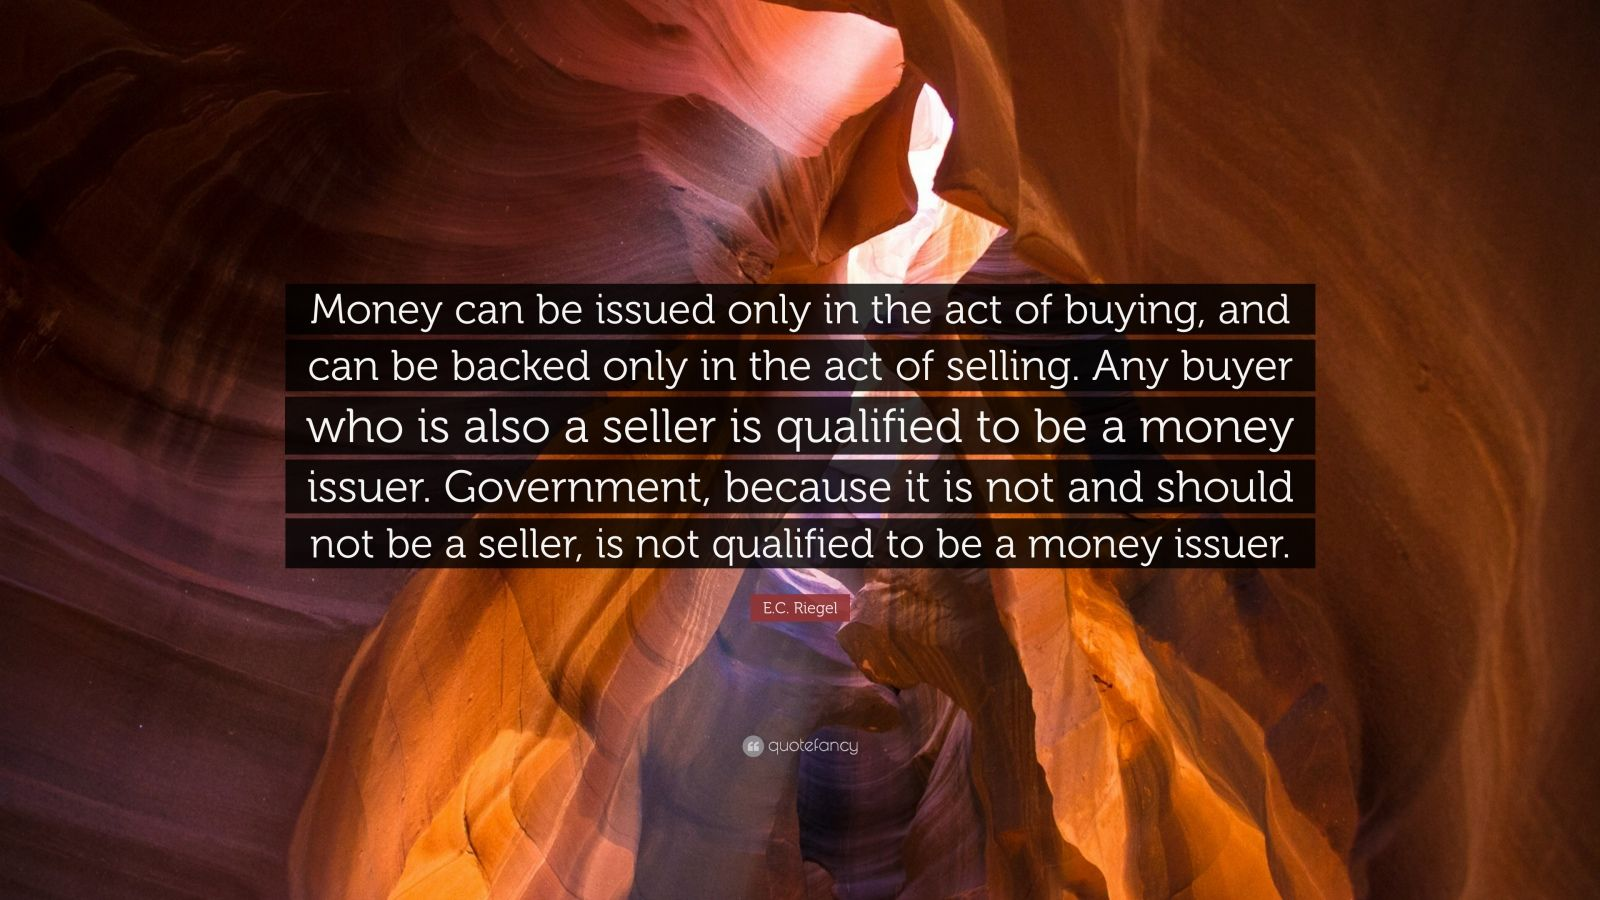 "E.C. Riegel Quote: ""Money can be issued only in the act of buying, and can be backed only in the act of selling. Any buyer who is also a seller is qualified to be a money issuer. Government, because it is not and should not be a seller, is not qualified to be a money issuer."""